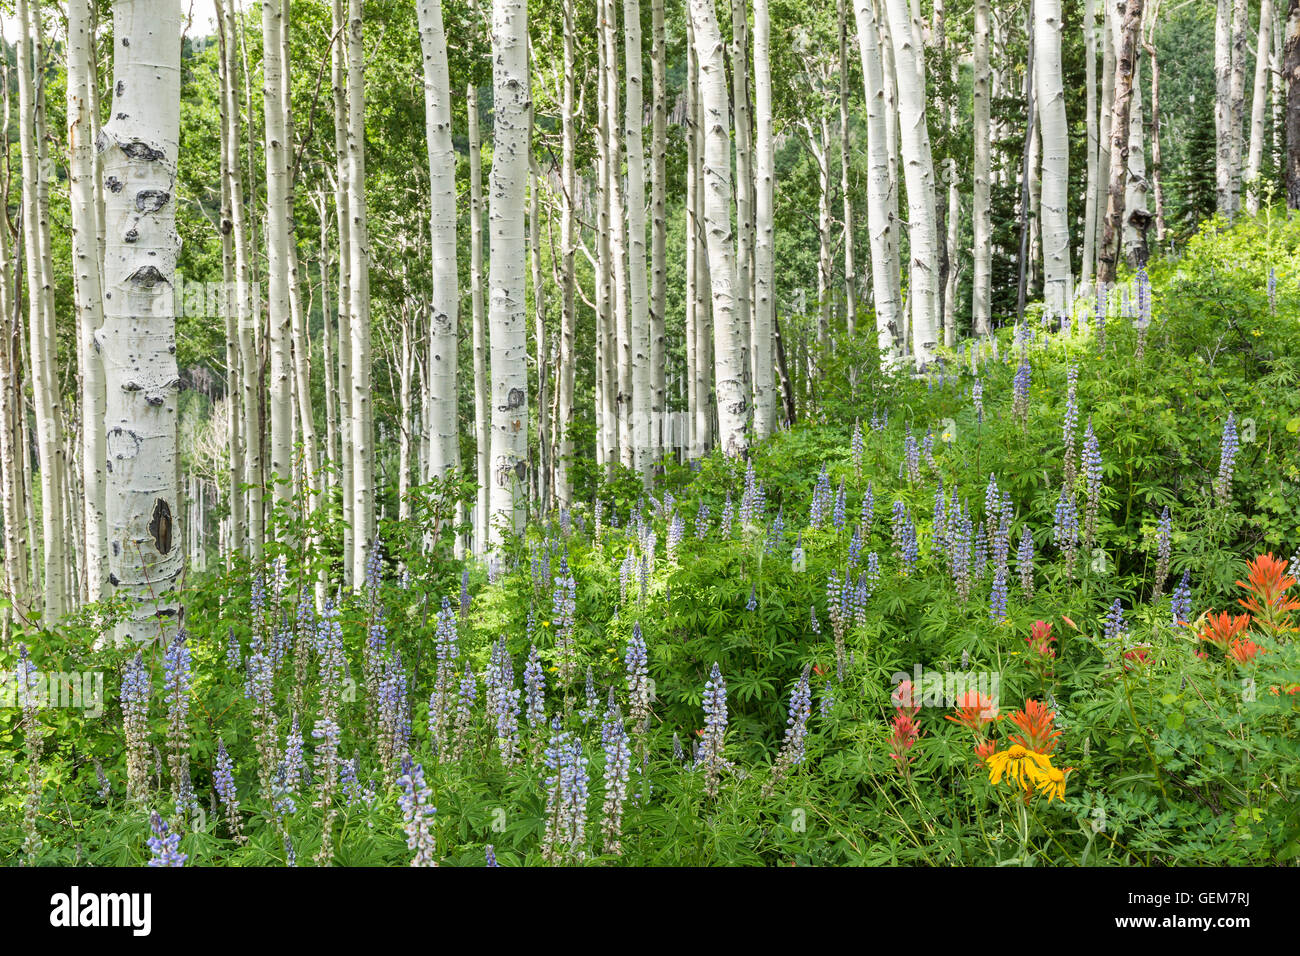 Sunlight sidelights aspen trees on a slope with Lupine and other wildflowers in the alpine La Sal Mountains of Utah - Stock Image